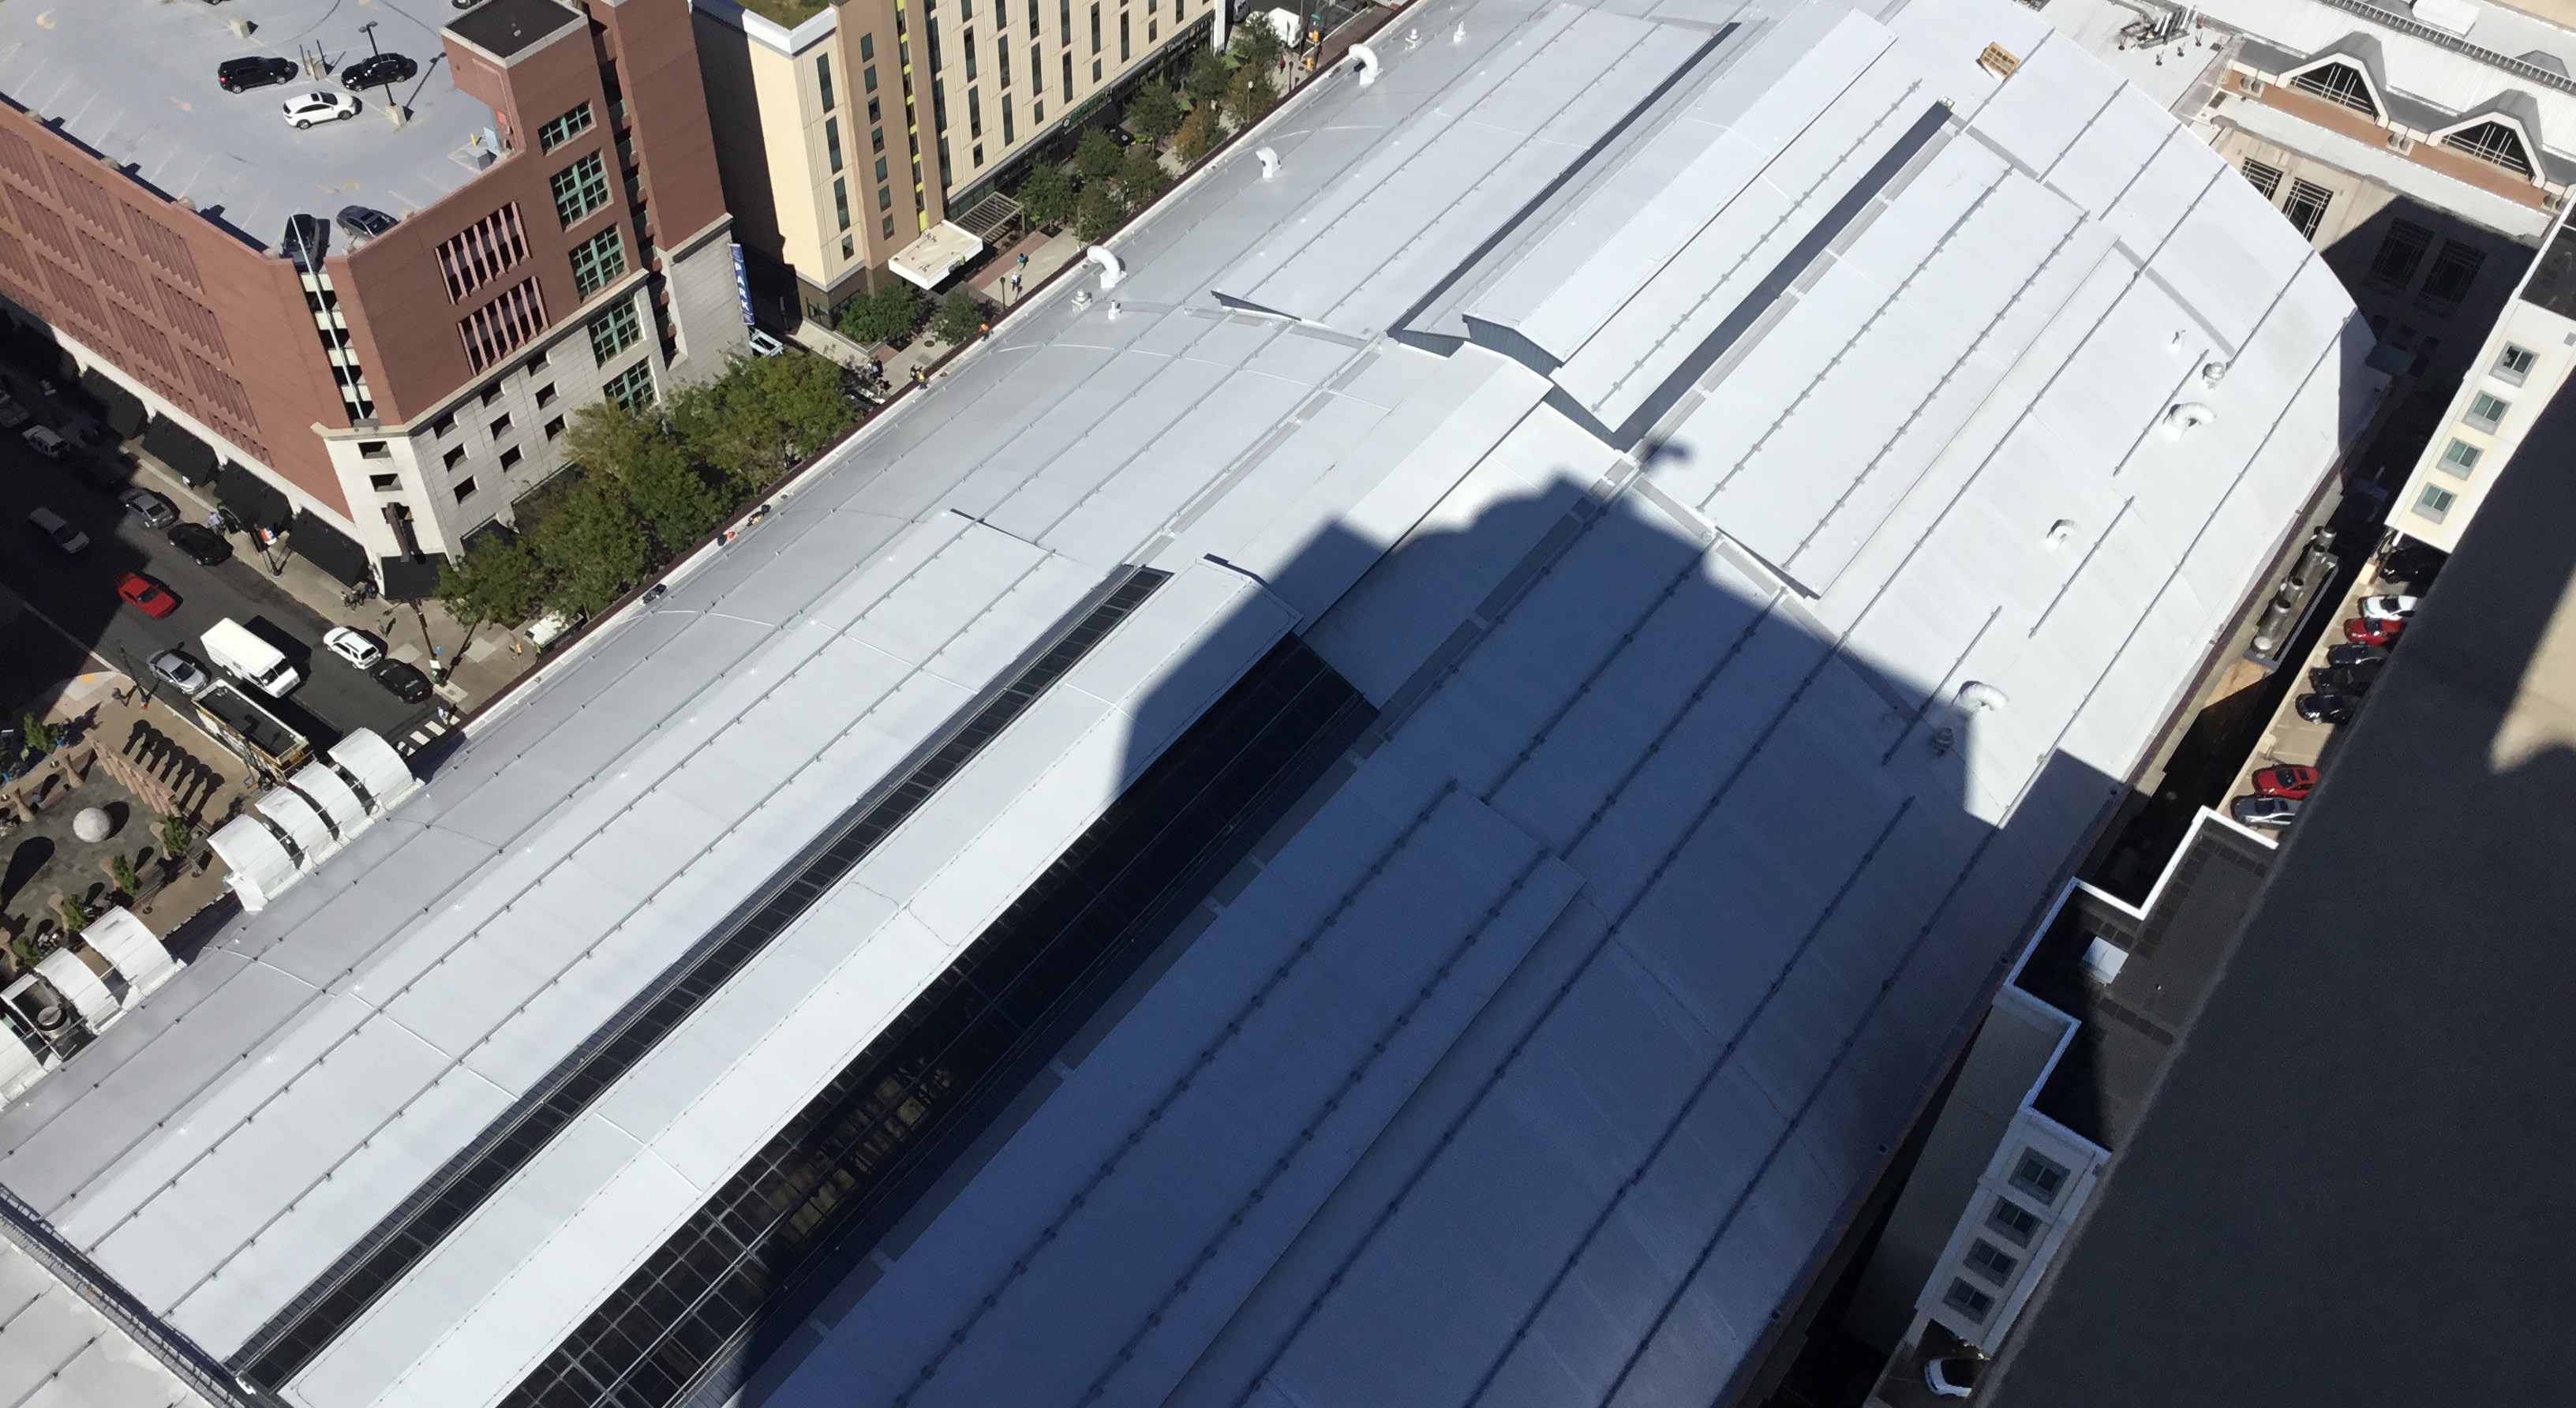 Ariel view of the Pennsylvania convention center building showing a white membrane roof